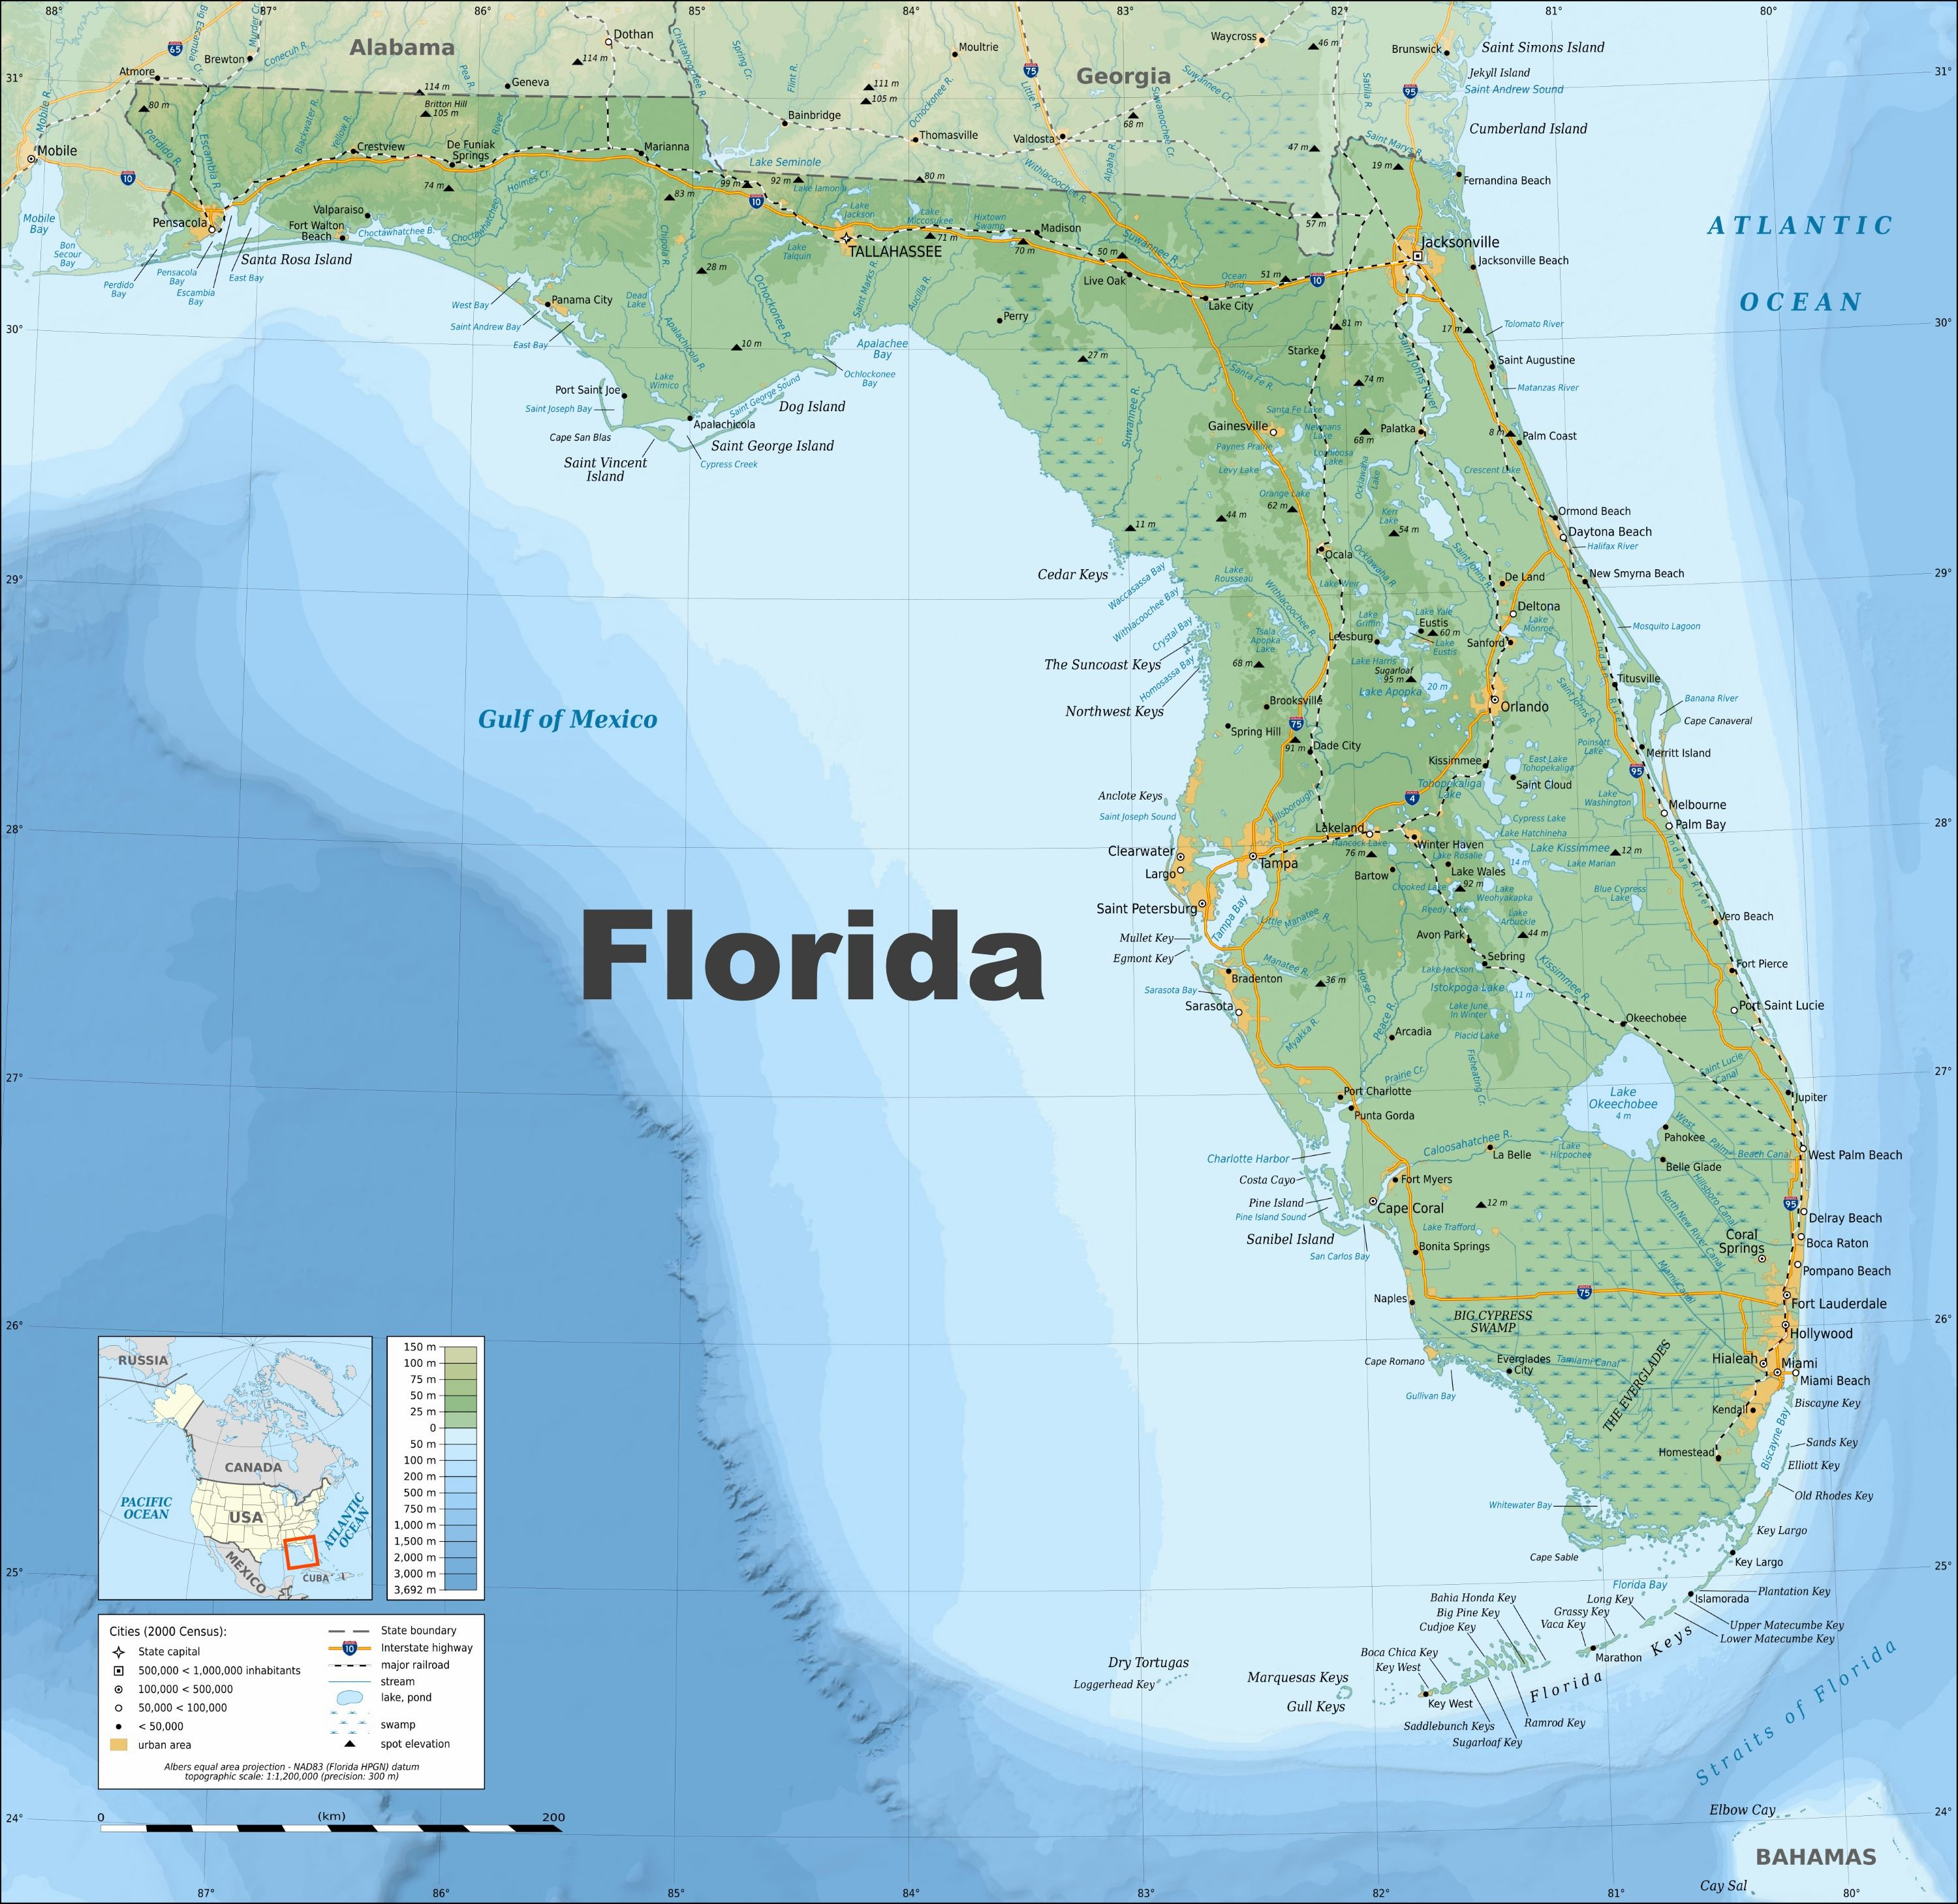 Large Florida Maps For Free Download And Print | High-Resolution And - Map Of Clearwater Florida And Surrounding Areas